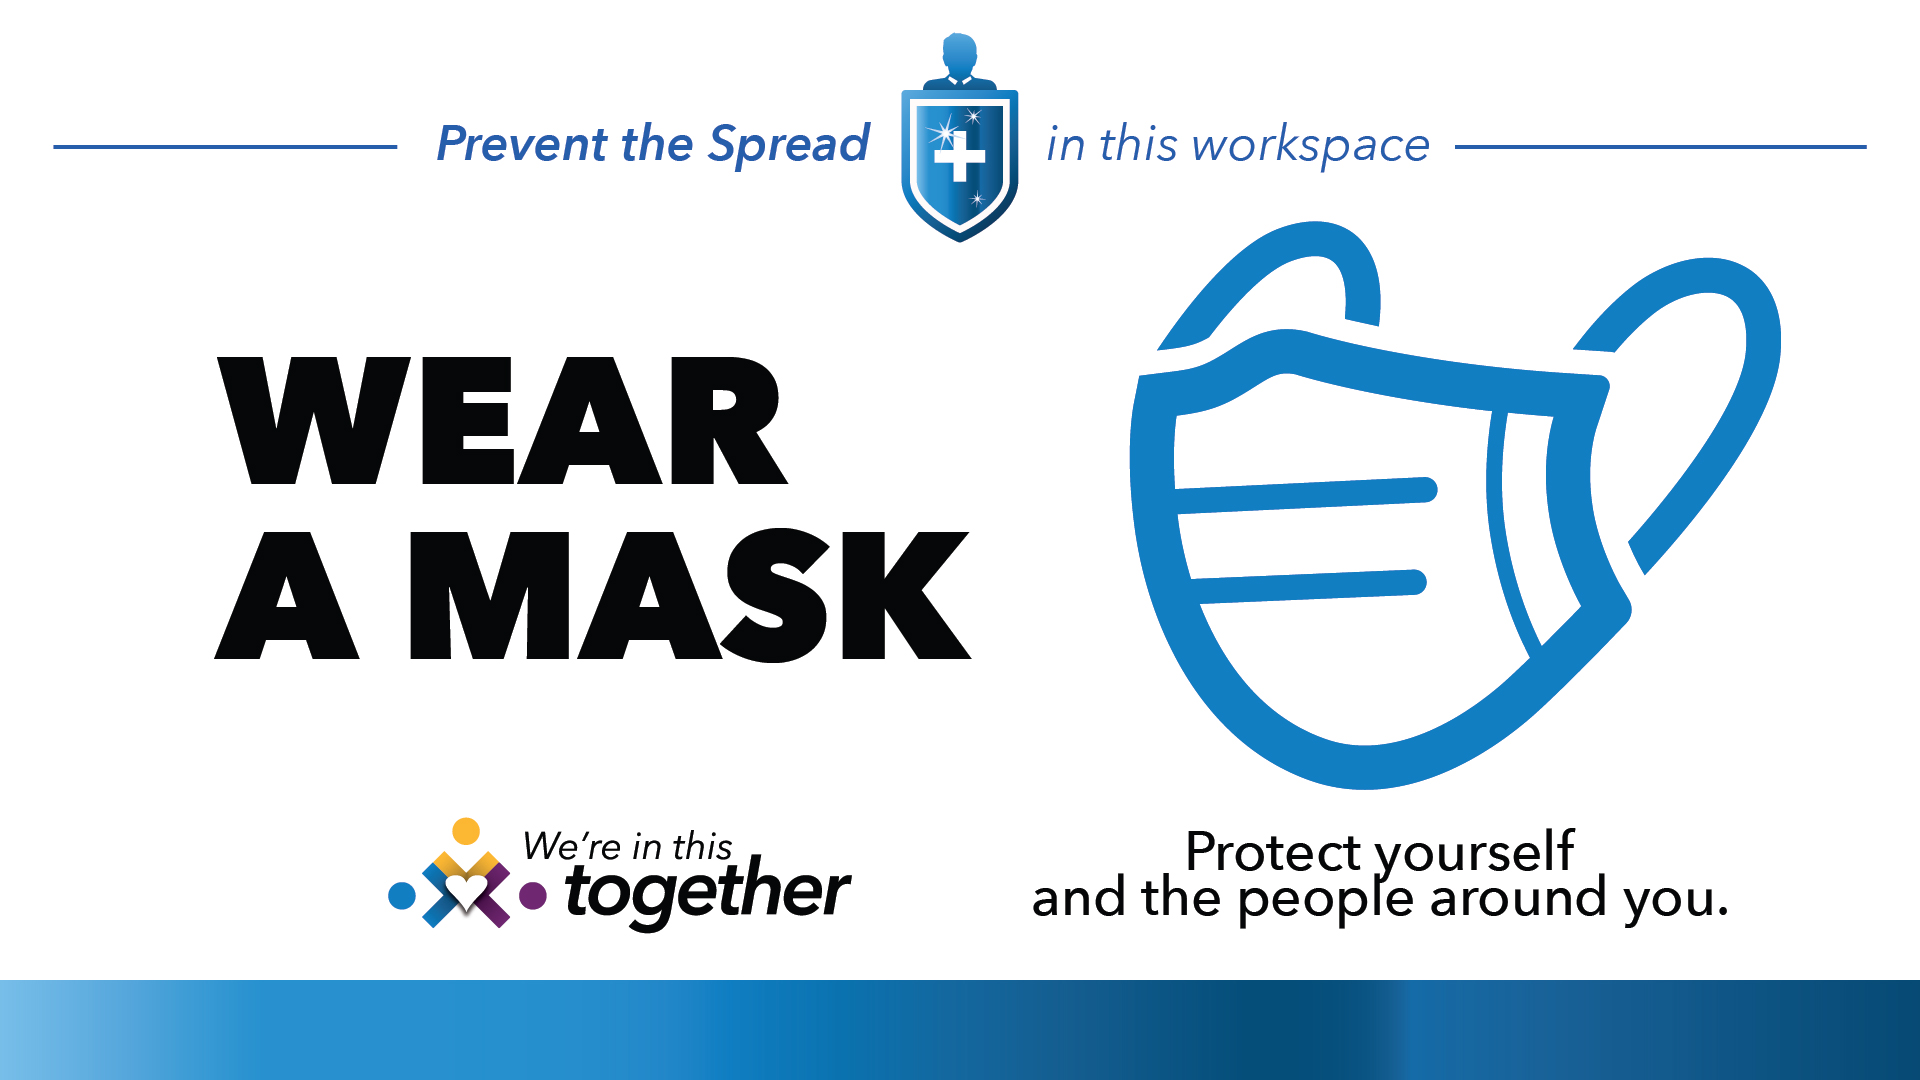 In this Workspace - Wear a Mask Digital Signage Image